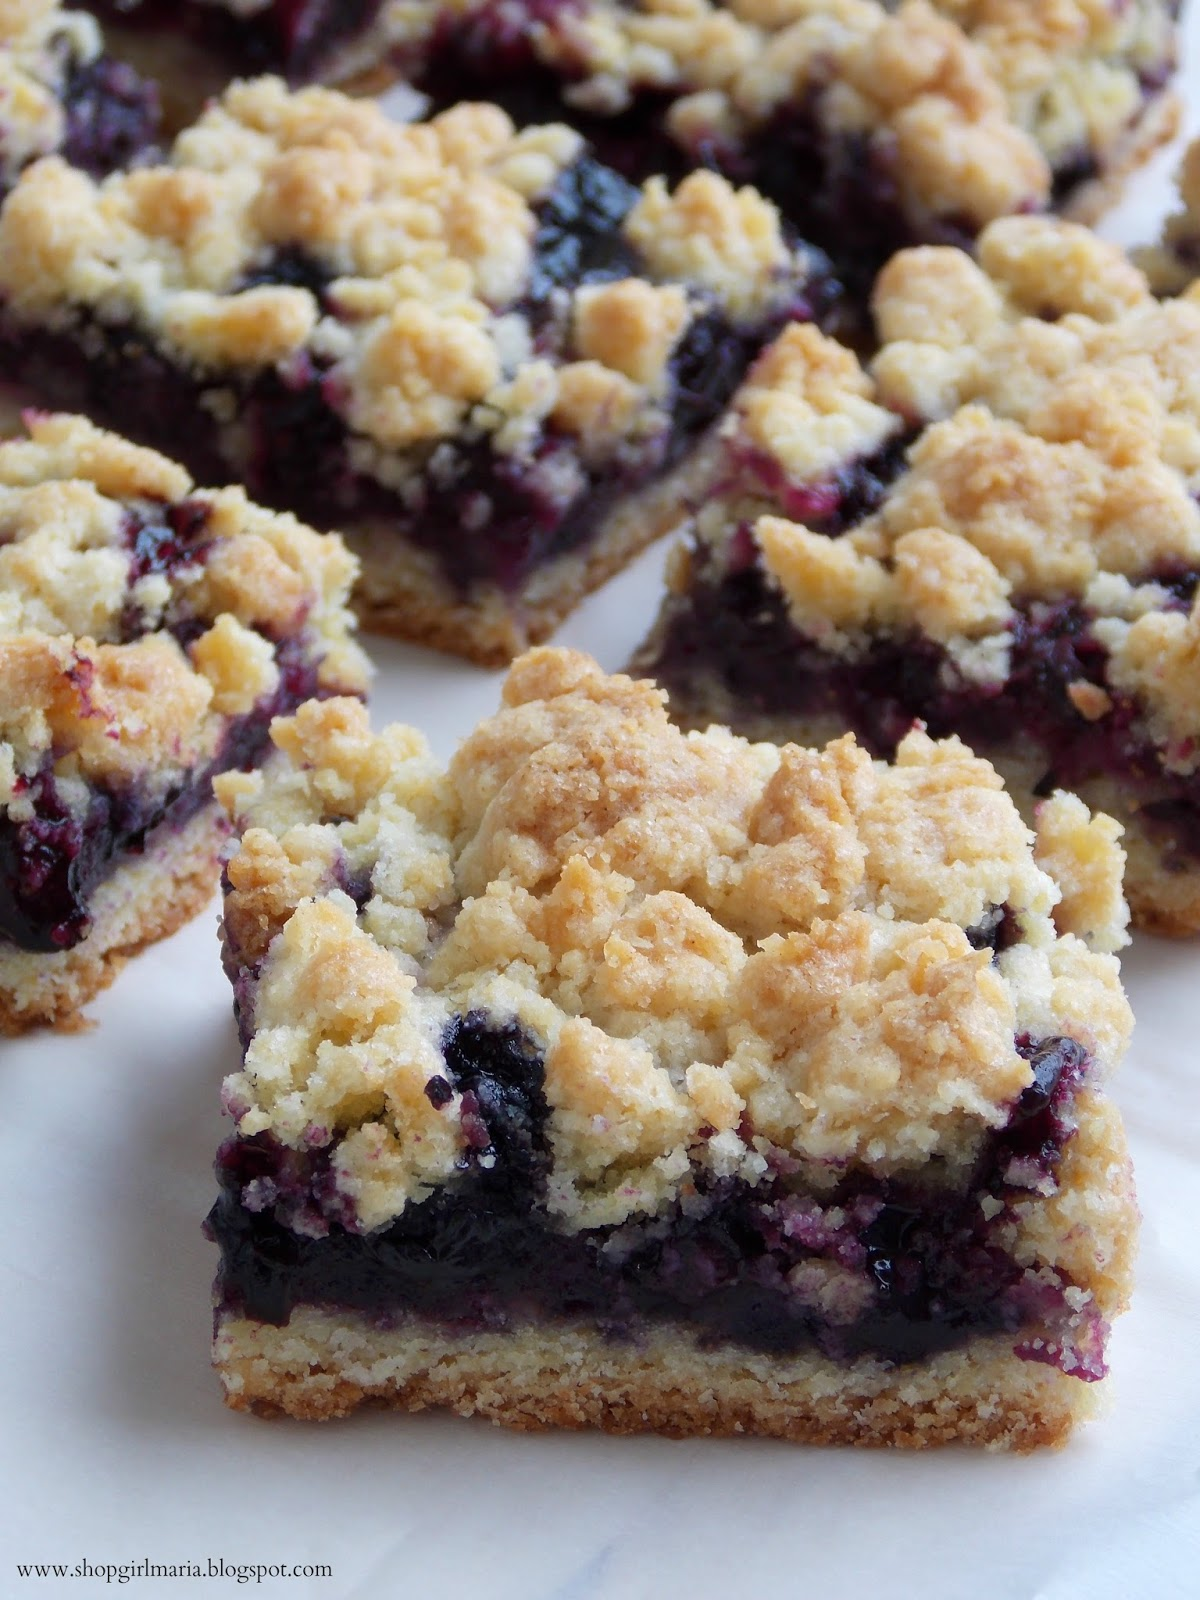 Shopgirl: Blueberry Crumb Bars